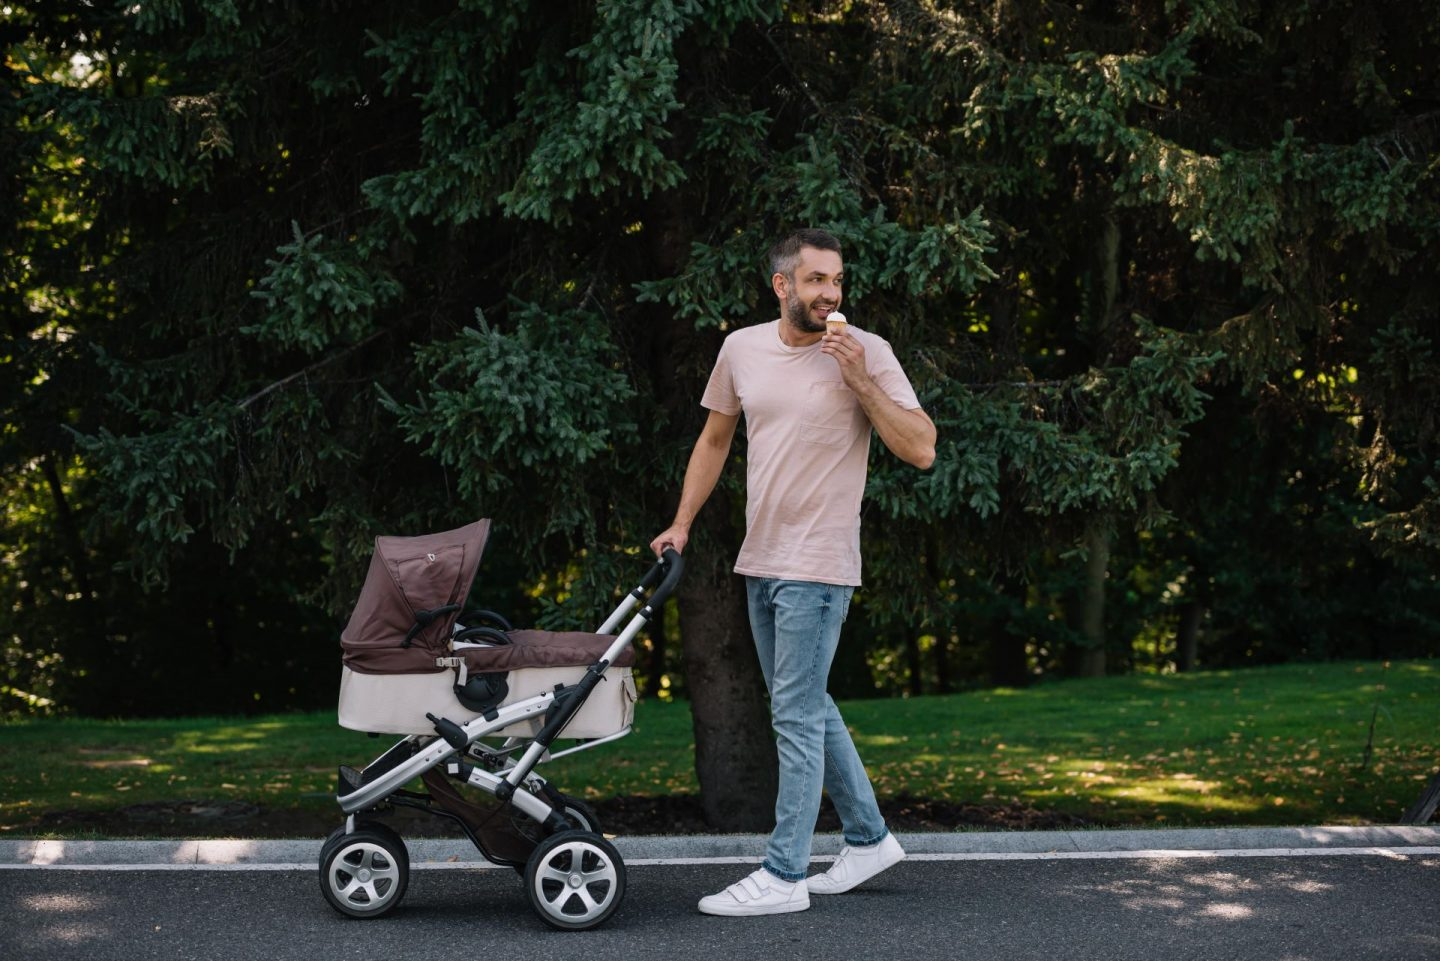 Father pushing a pram. Earn money with Y'earn or earn money renting out baby and child products.